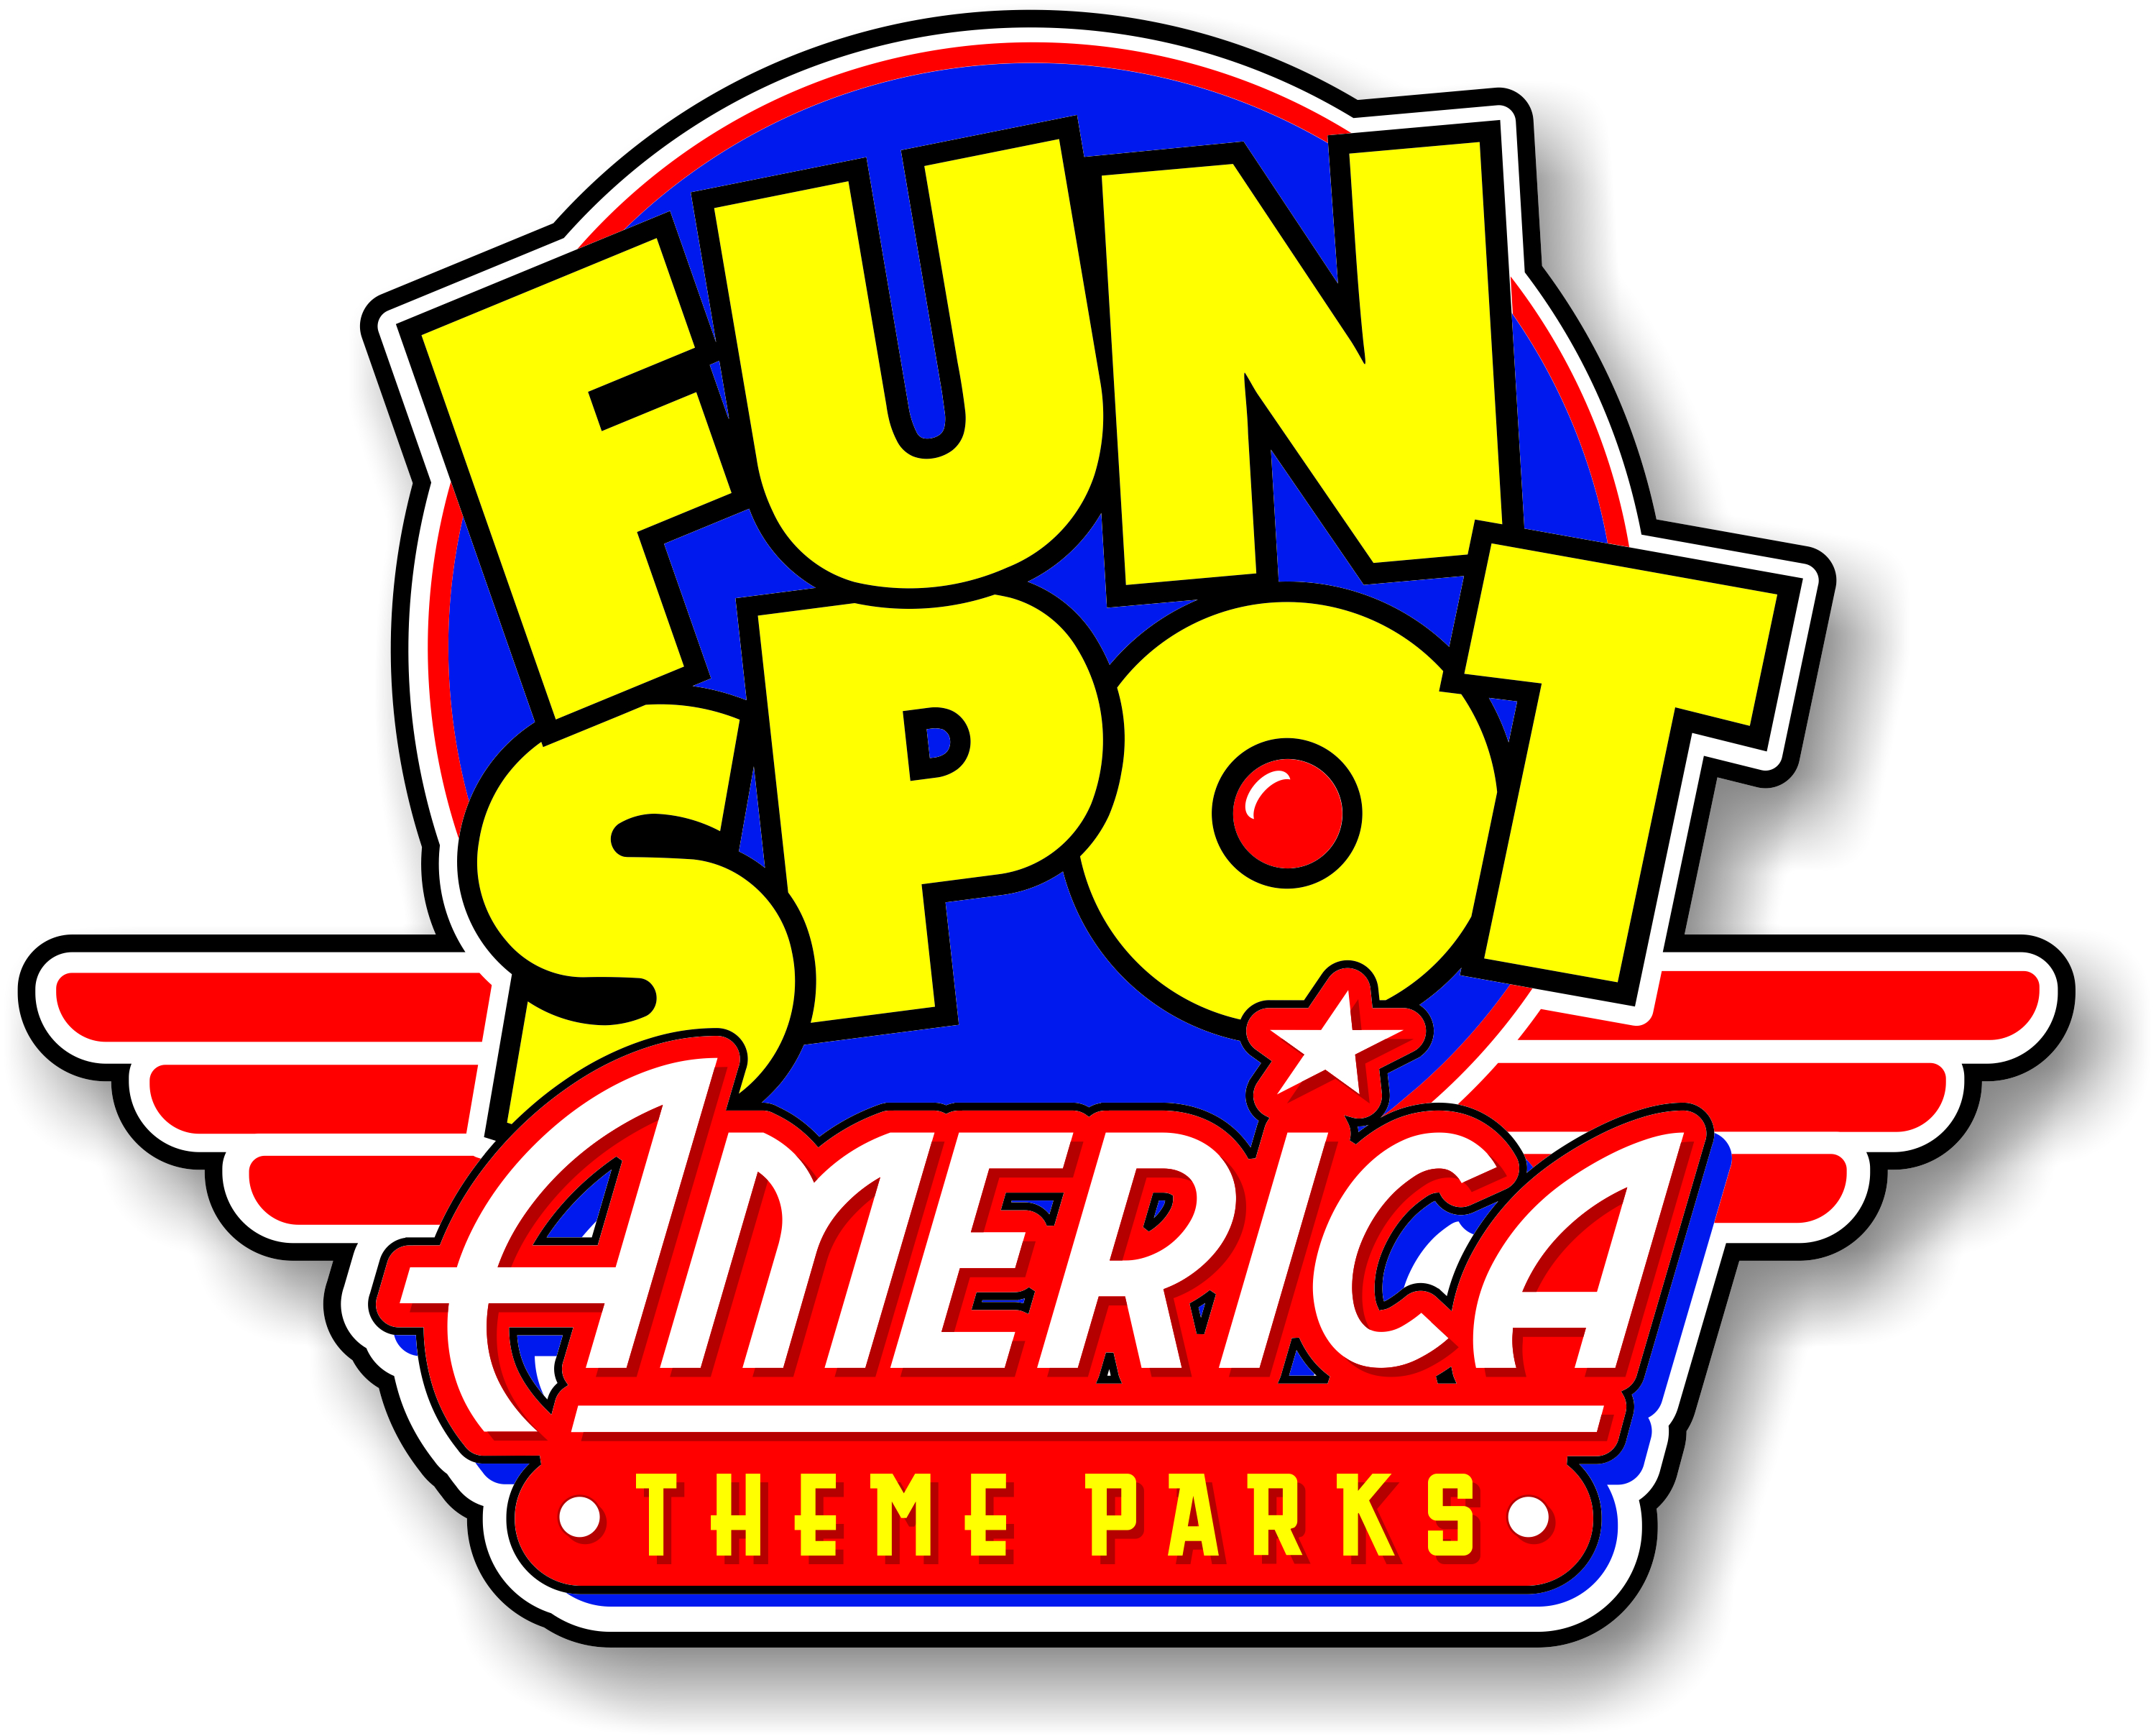 Fun Spot America Theme Park logo cmyk hi res w shadow